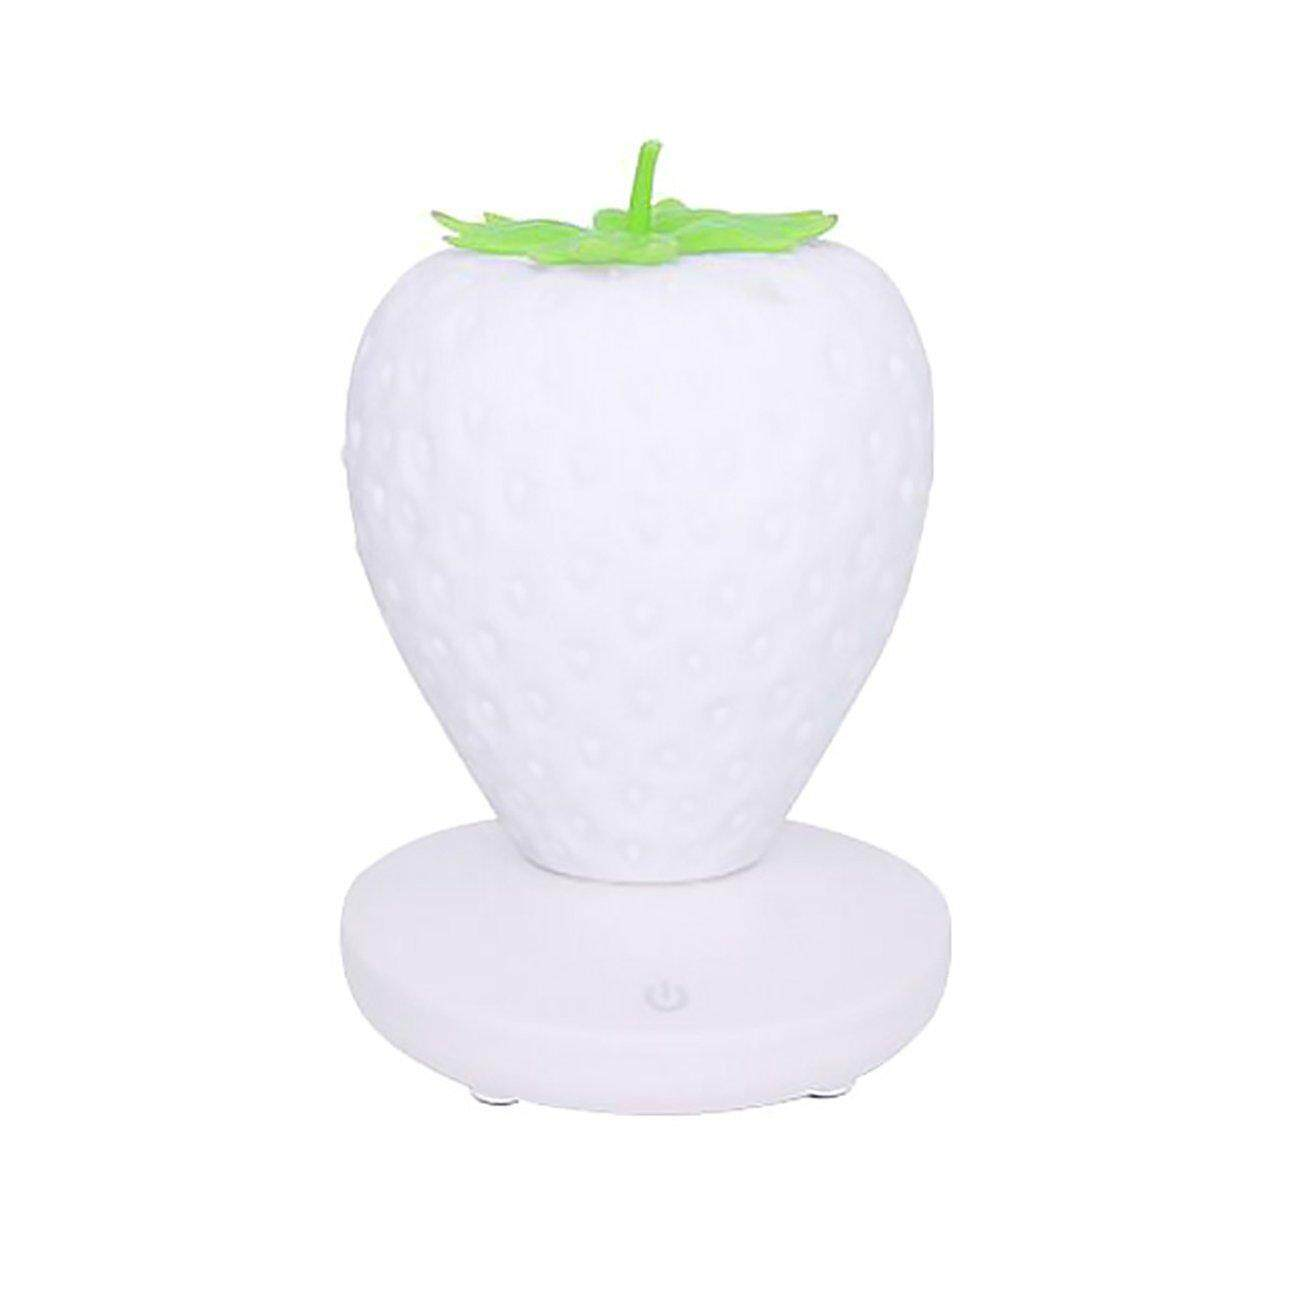 Hot Deals Silicone Strawberry Bedroom Led Charging Eye Care Energy Saving Night Light